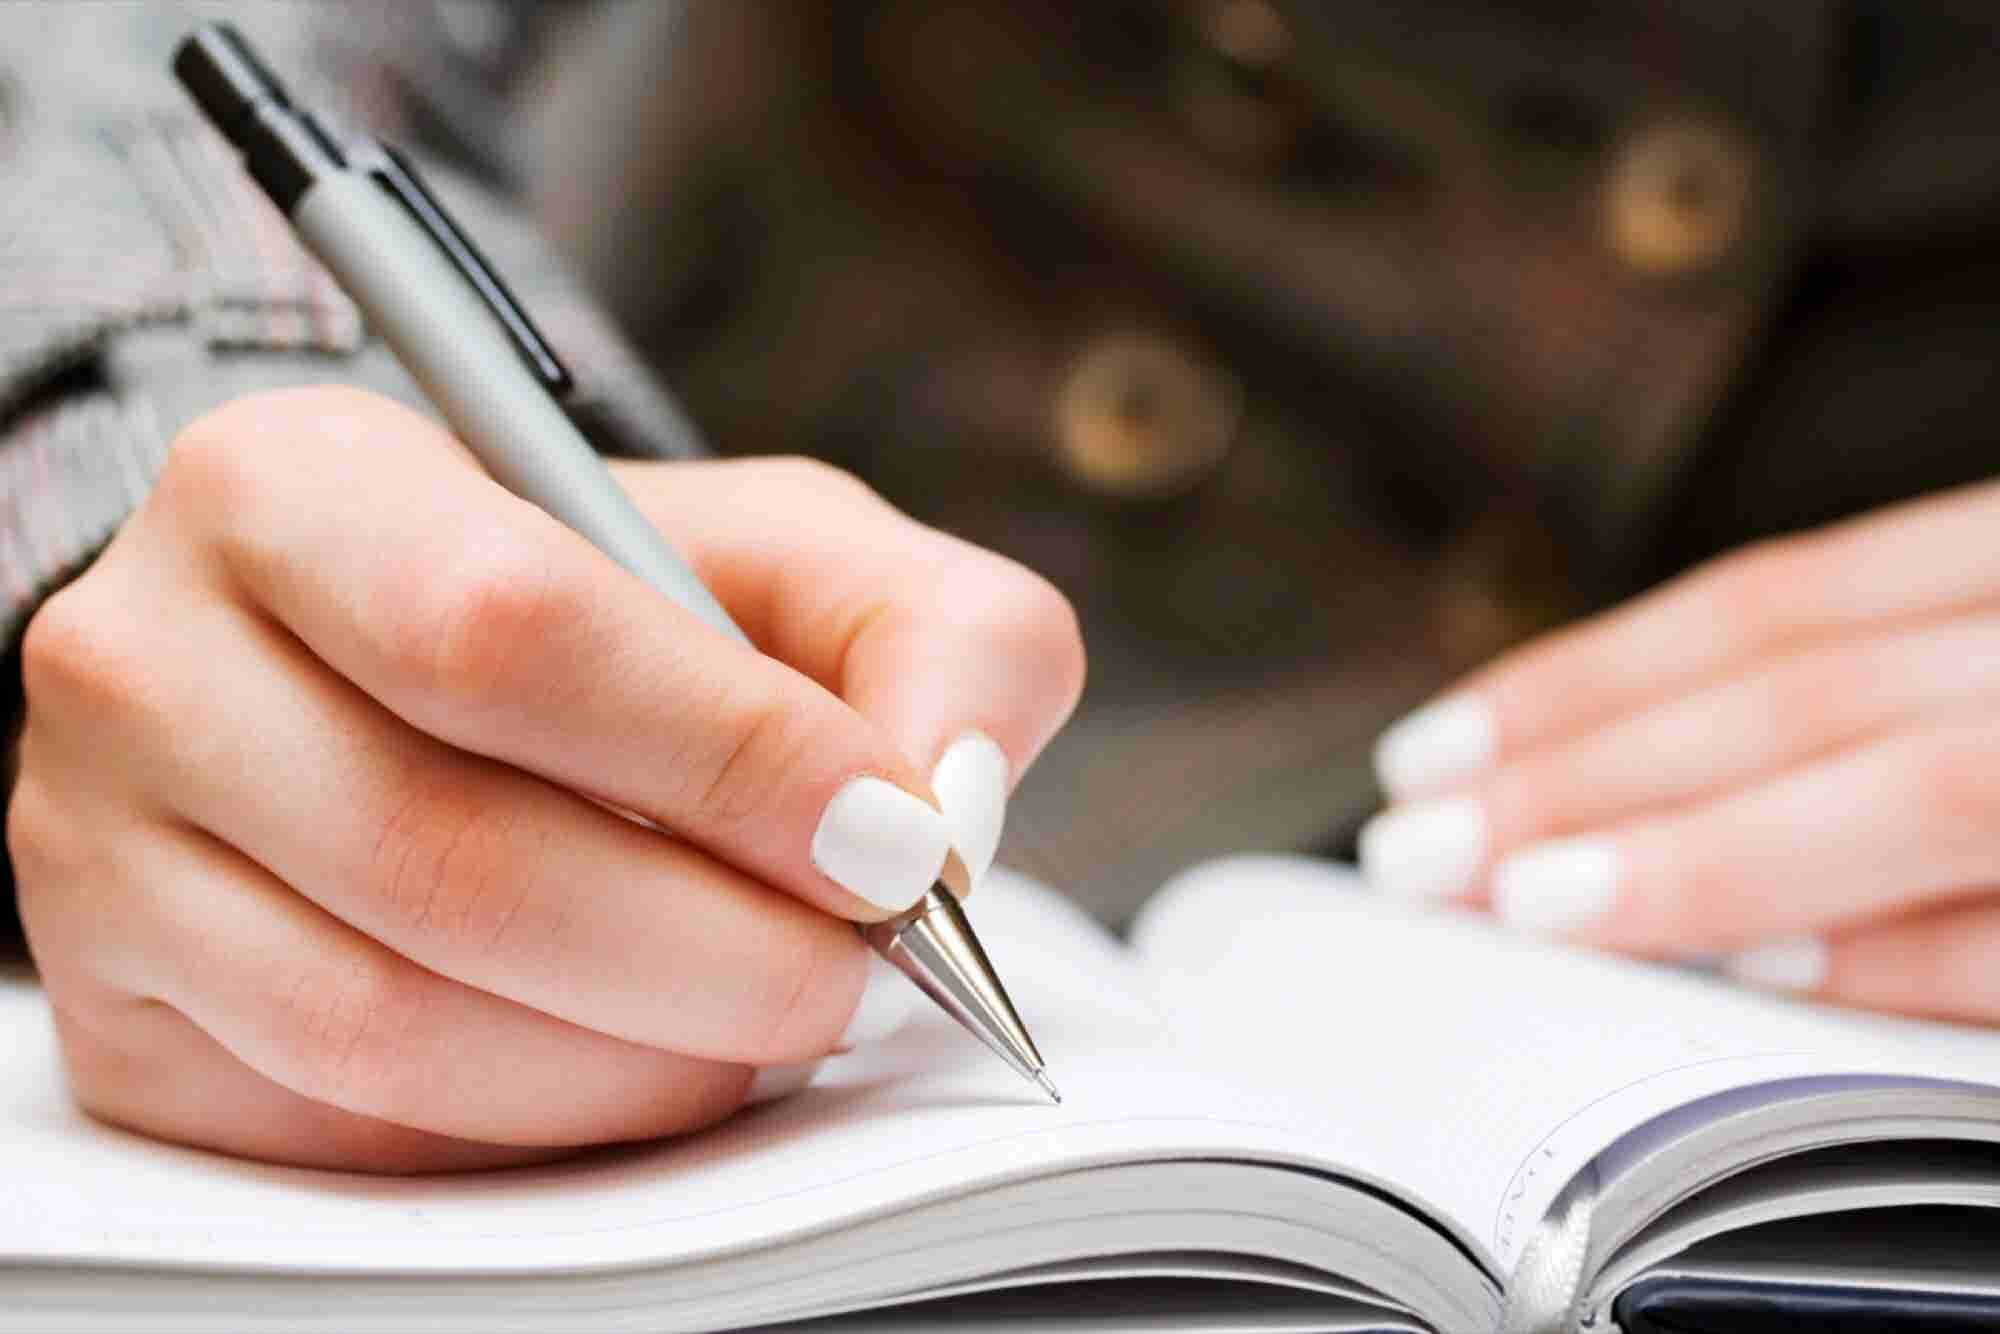 Tell Us: Should Schools Still Use Pencils and Paper?